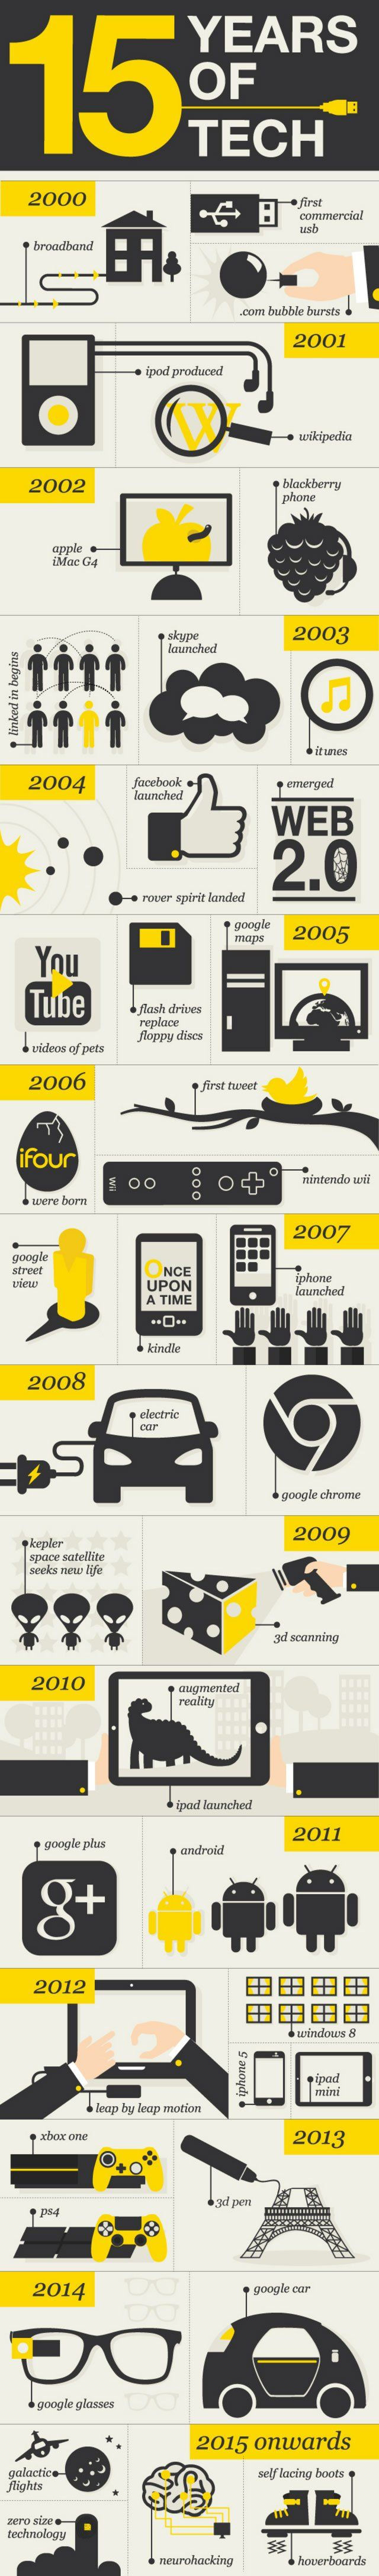 15 years of tech - Do you fancy an infographic?  There are a lot of them online, but if you want your own please visit http://www.linfografico.com/prezzi/  Online girano molte infografiche, se ne vuoi realizzare una tutta tua visita http://www.linfografico.com/prezzi/